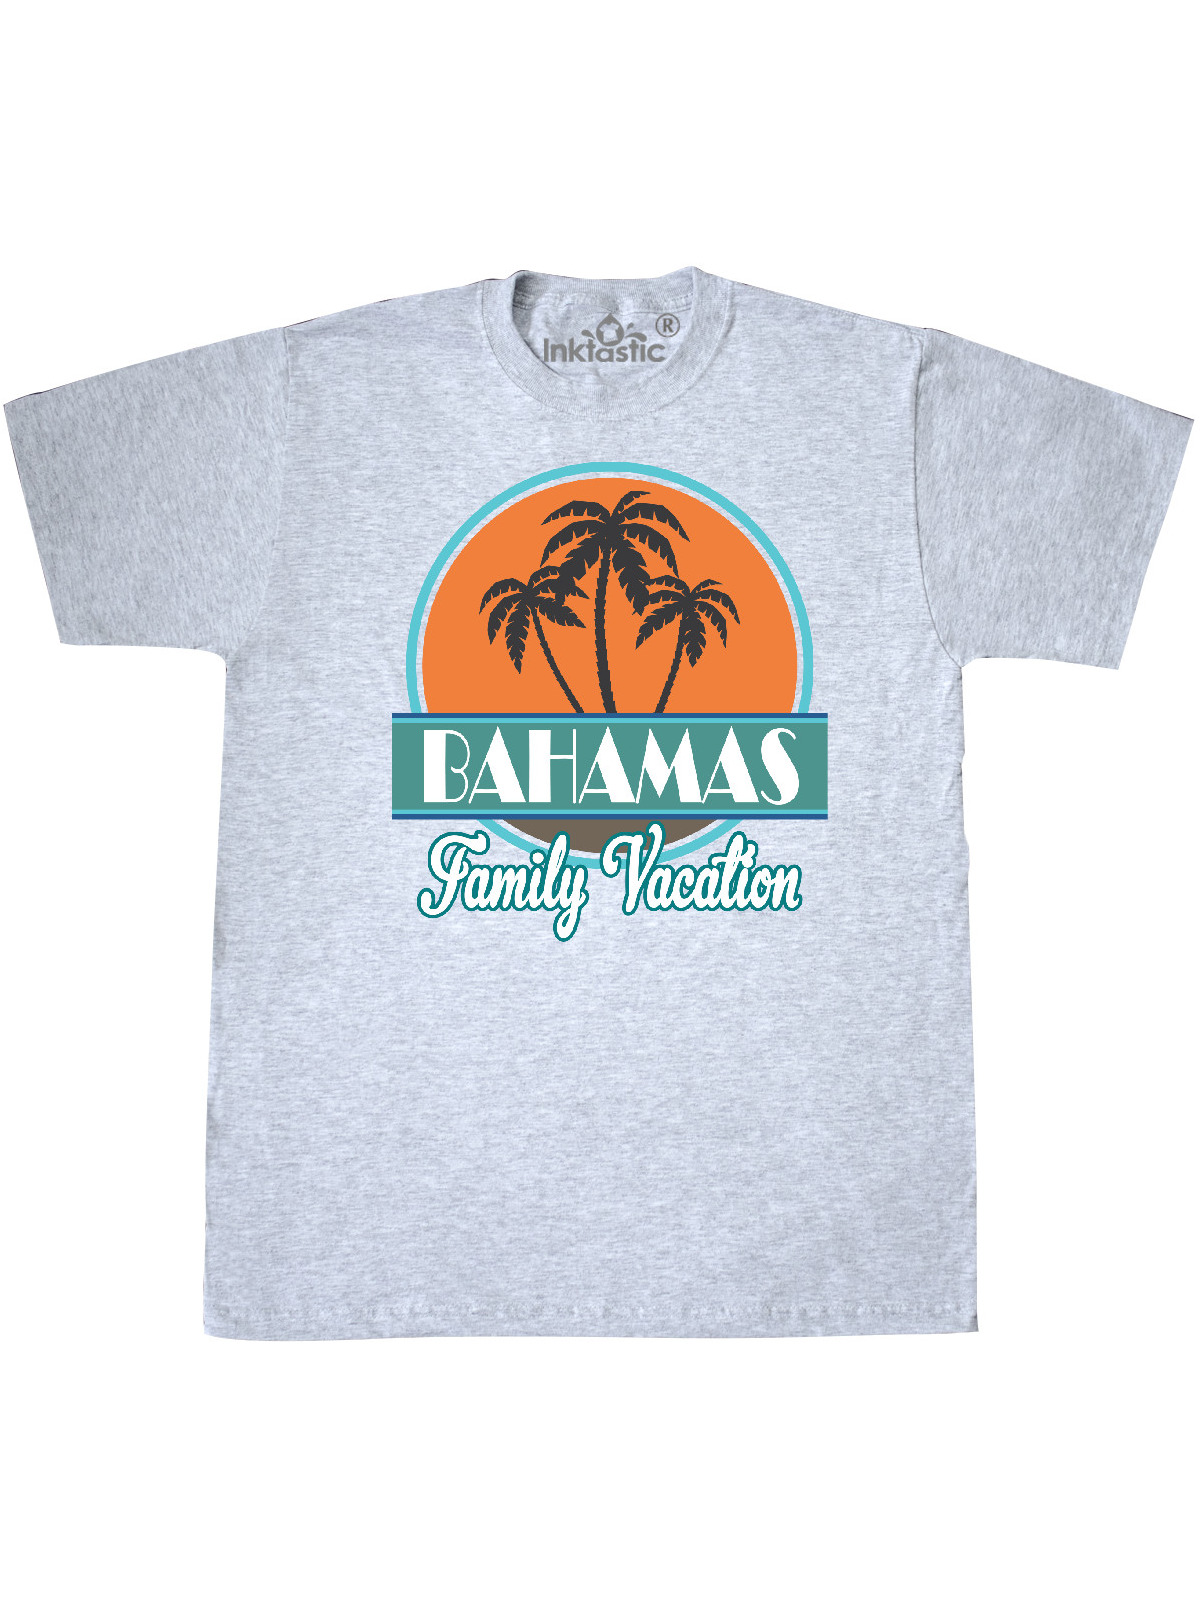 inktastic Bahamas Family Vacation Matching Baby T-Shirt